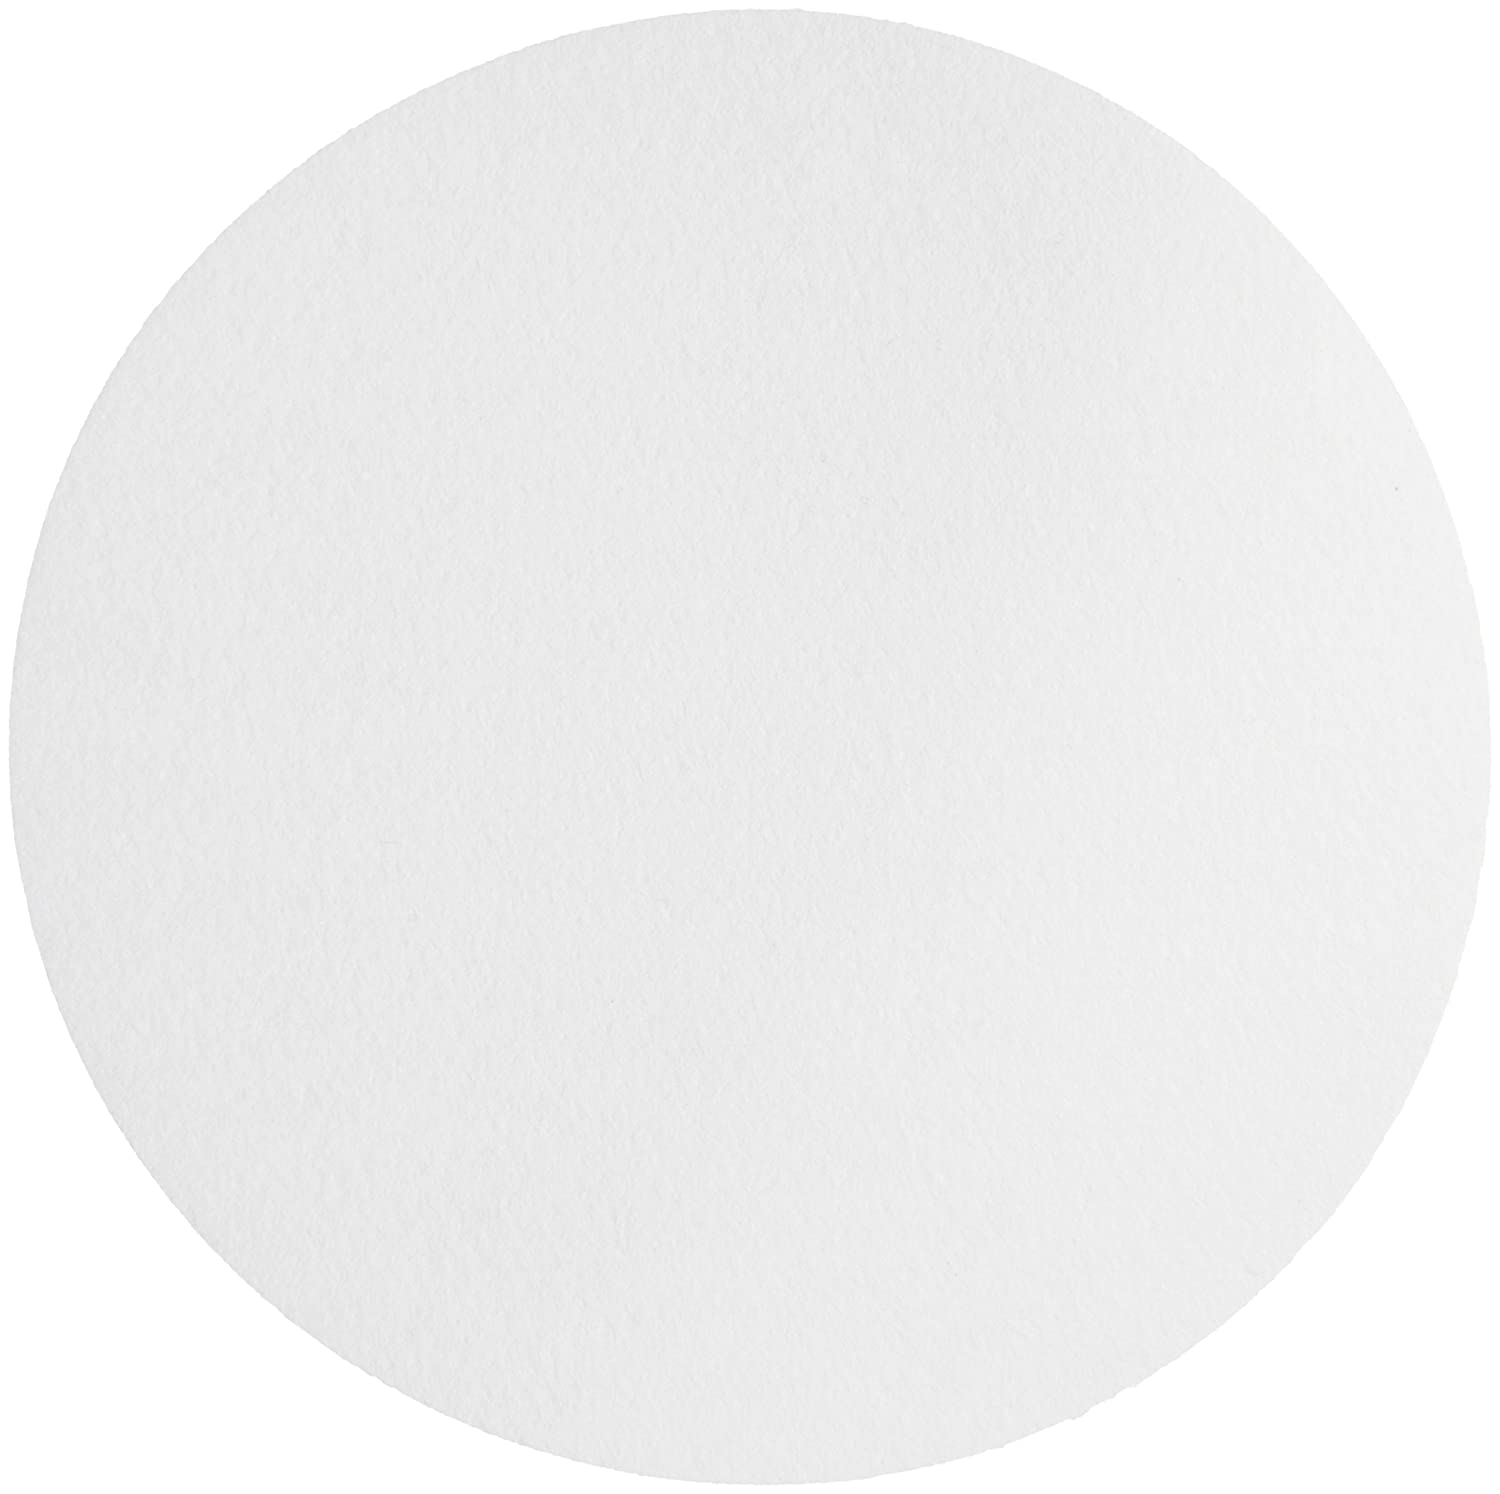 Whatman 1005-047 Quantitative-Filter-Paper (Pack of 100) GE Healthcare F1080-2